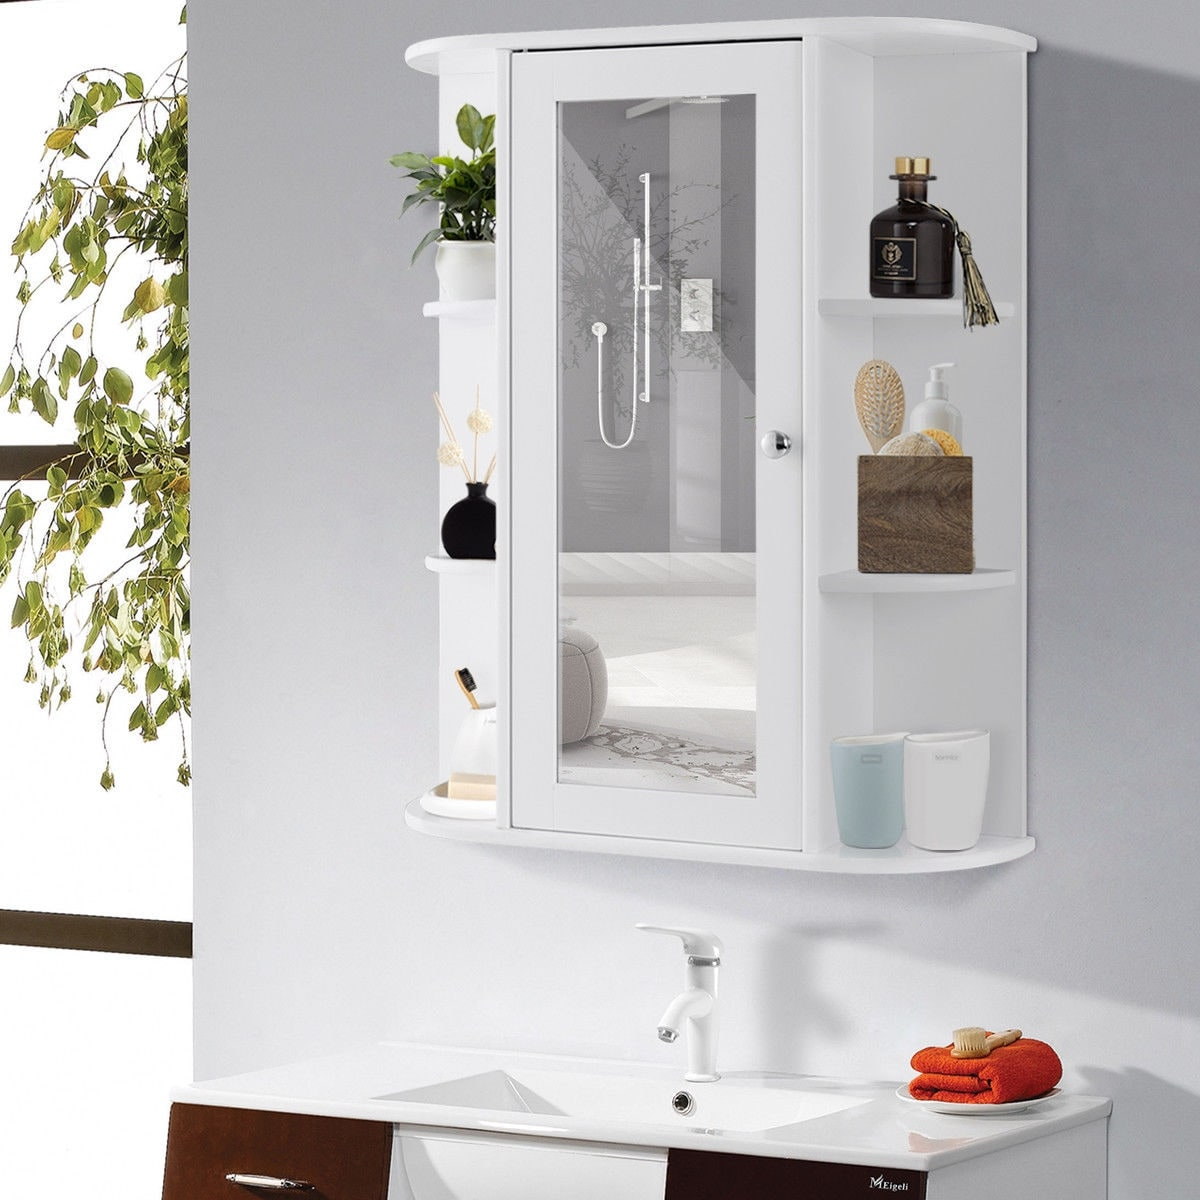 Shop Black Friday Deals On Gymax Bathroom Cabinet Single Door Shelves Wall Mount Cabinet W On Sale Overstock 22985062